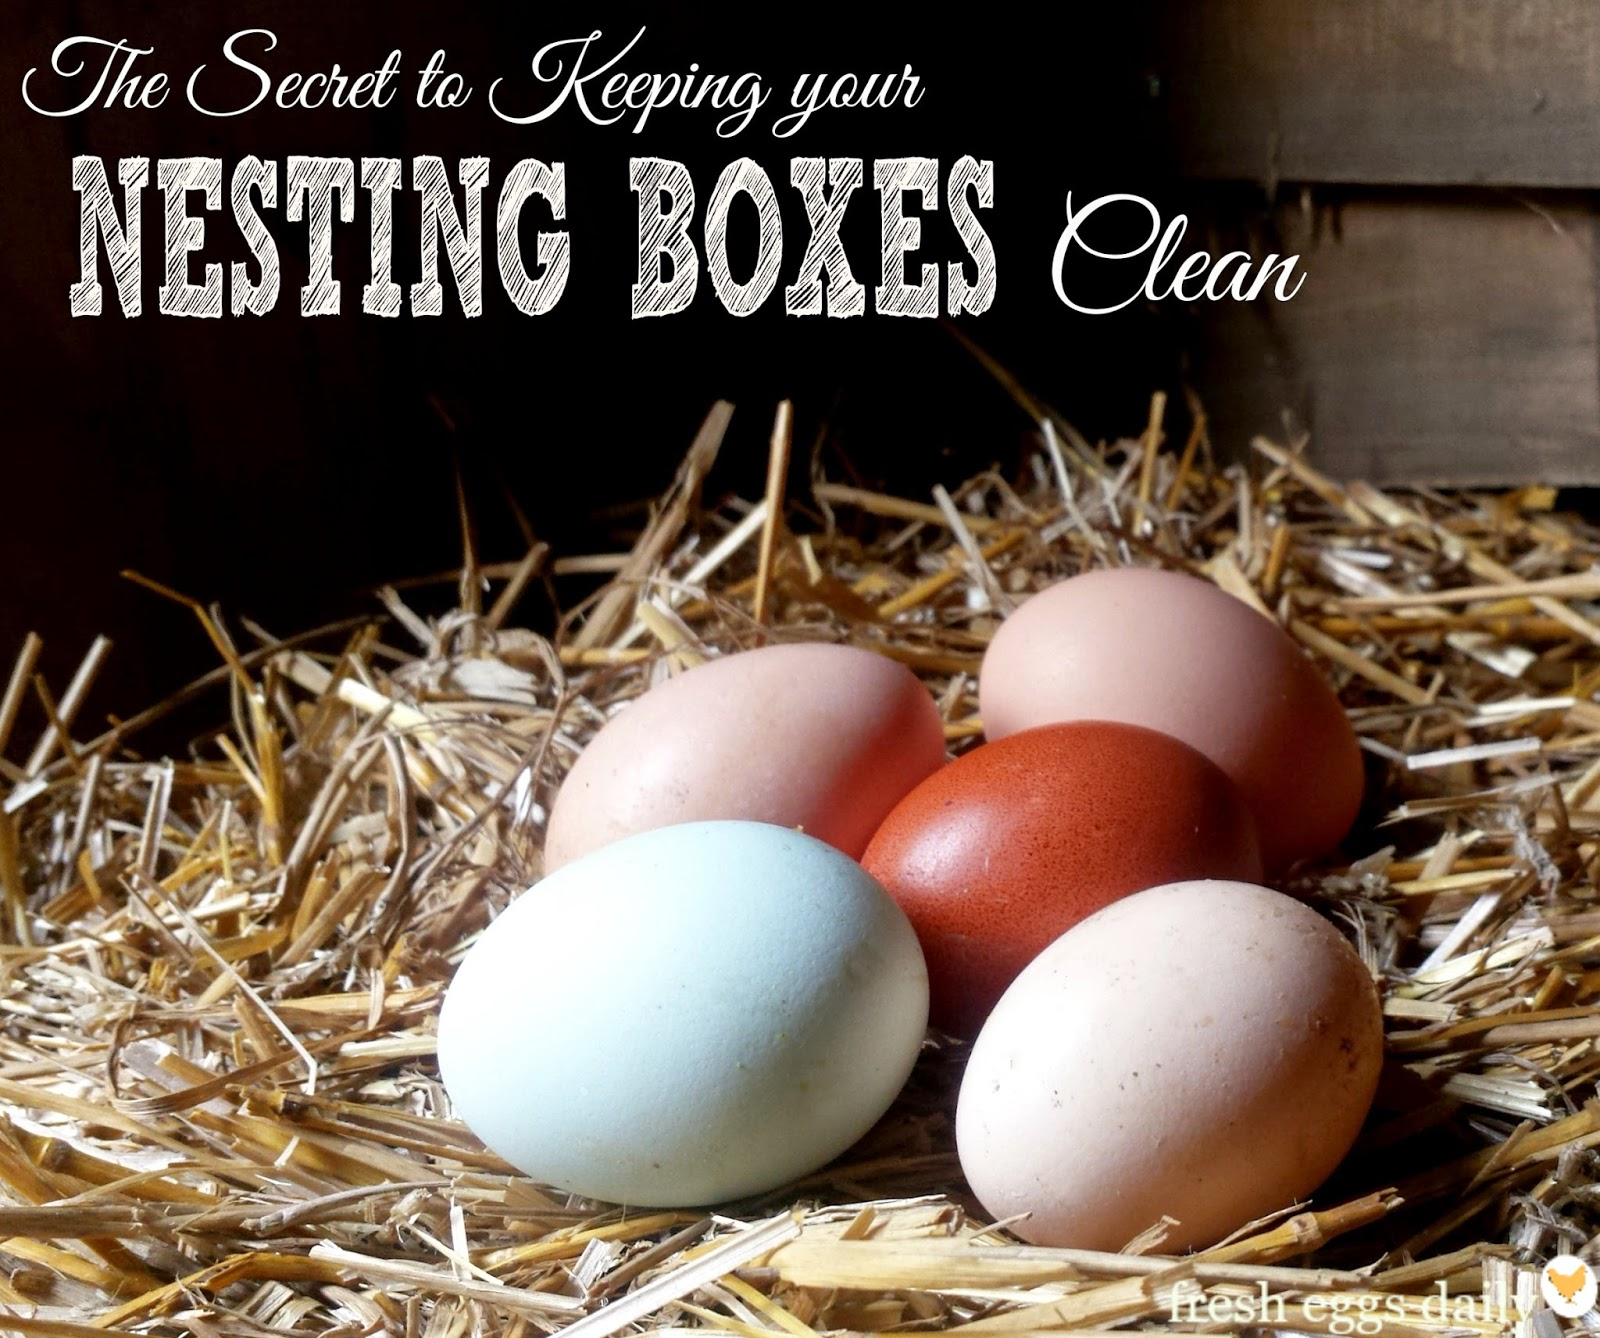 clean-eggs-in-nesting-box.jpg